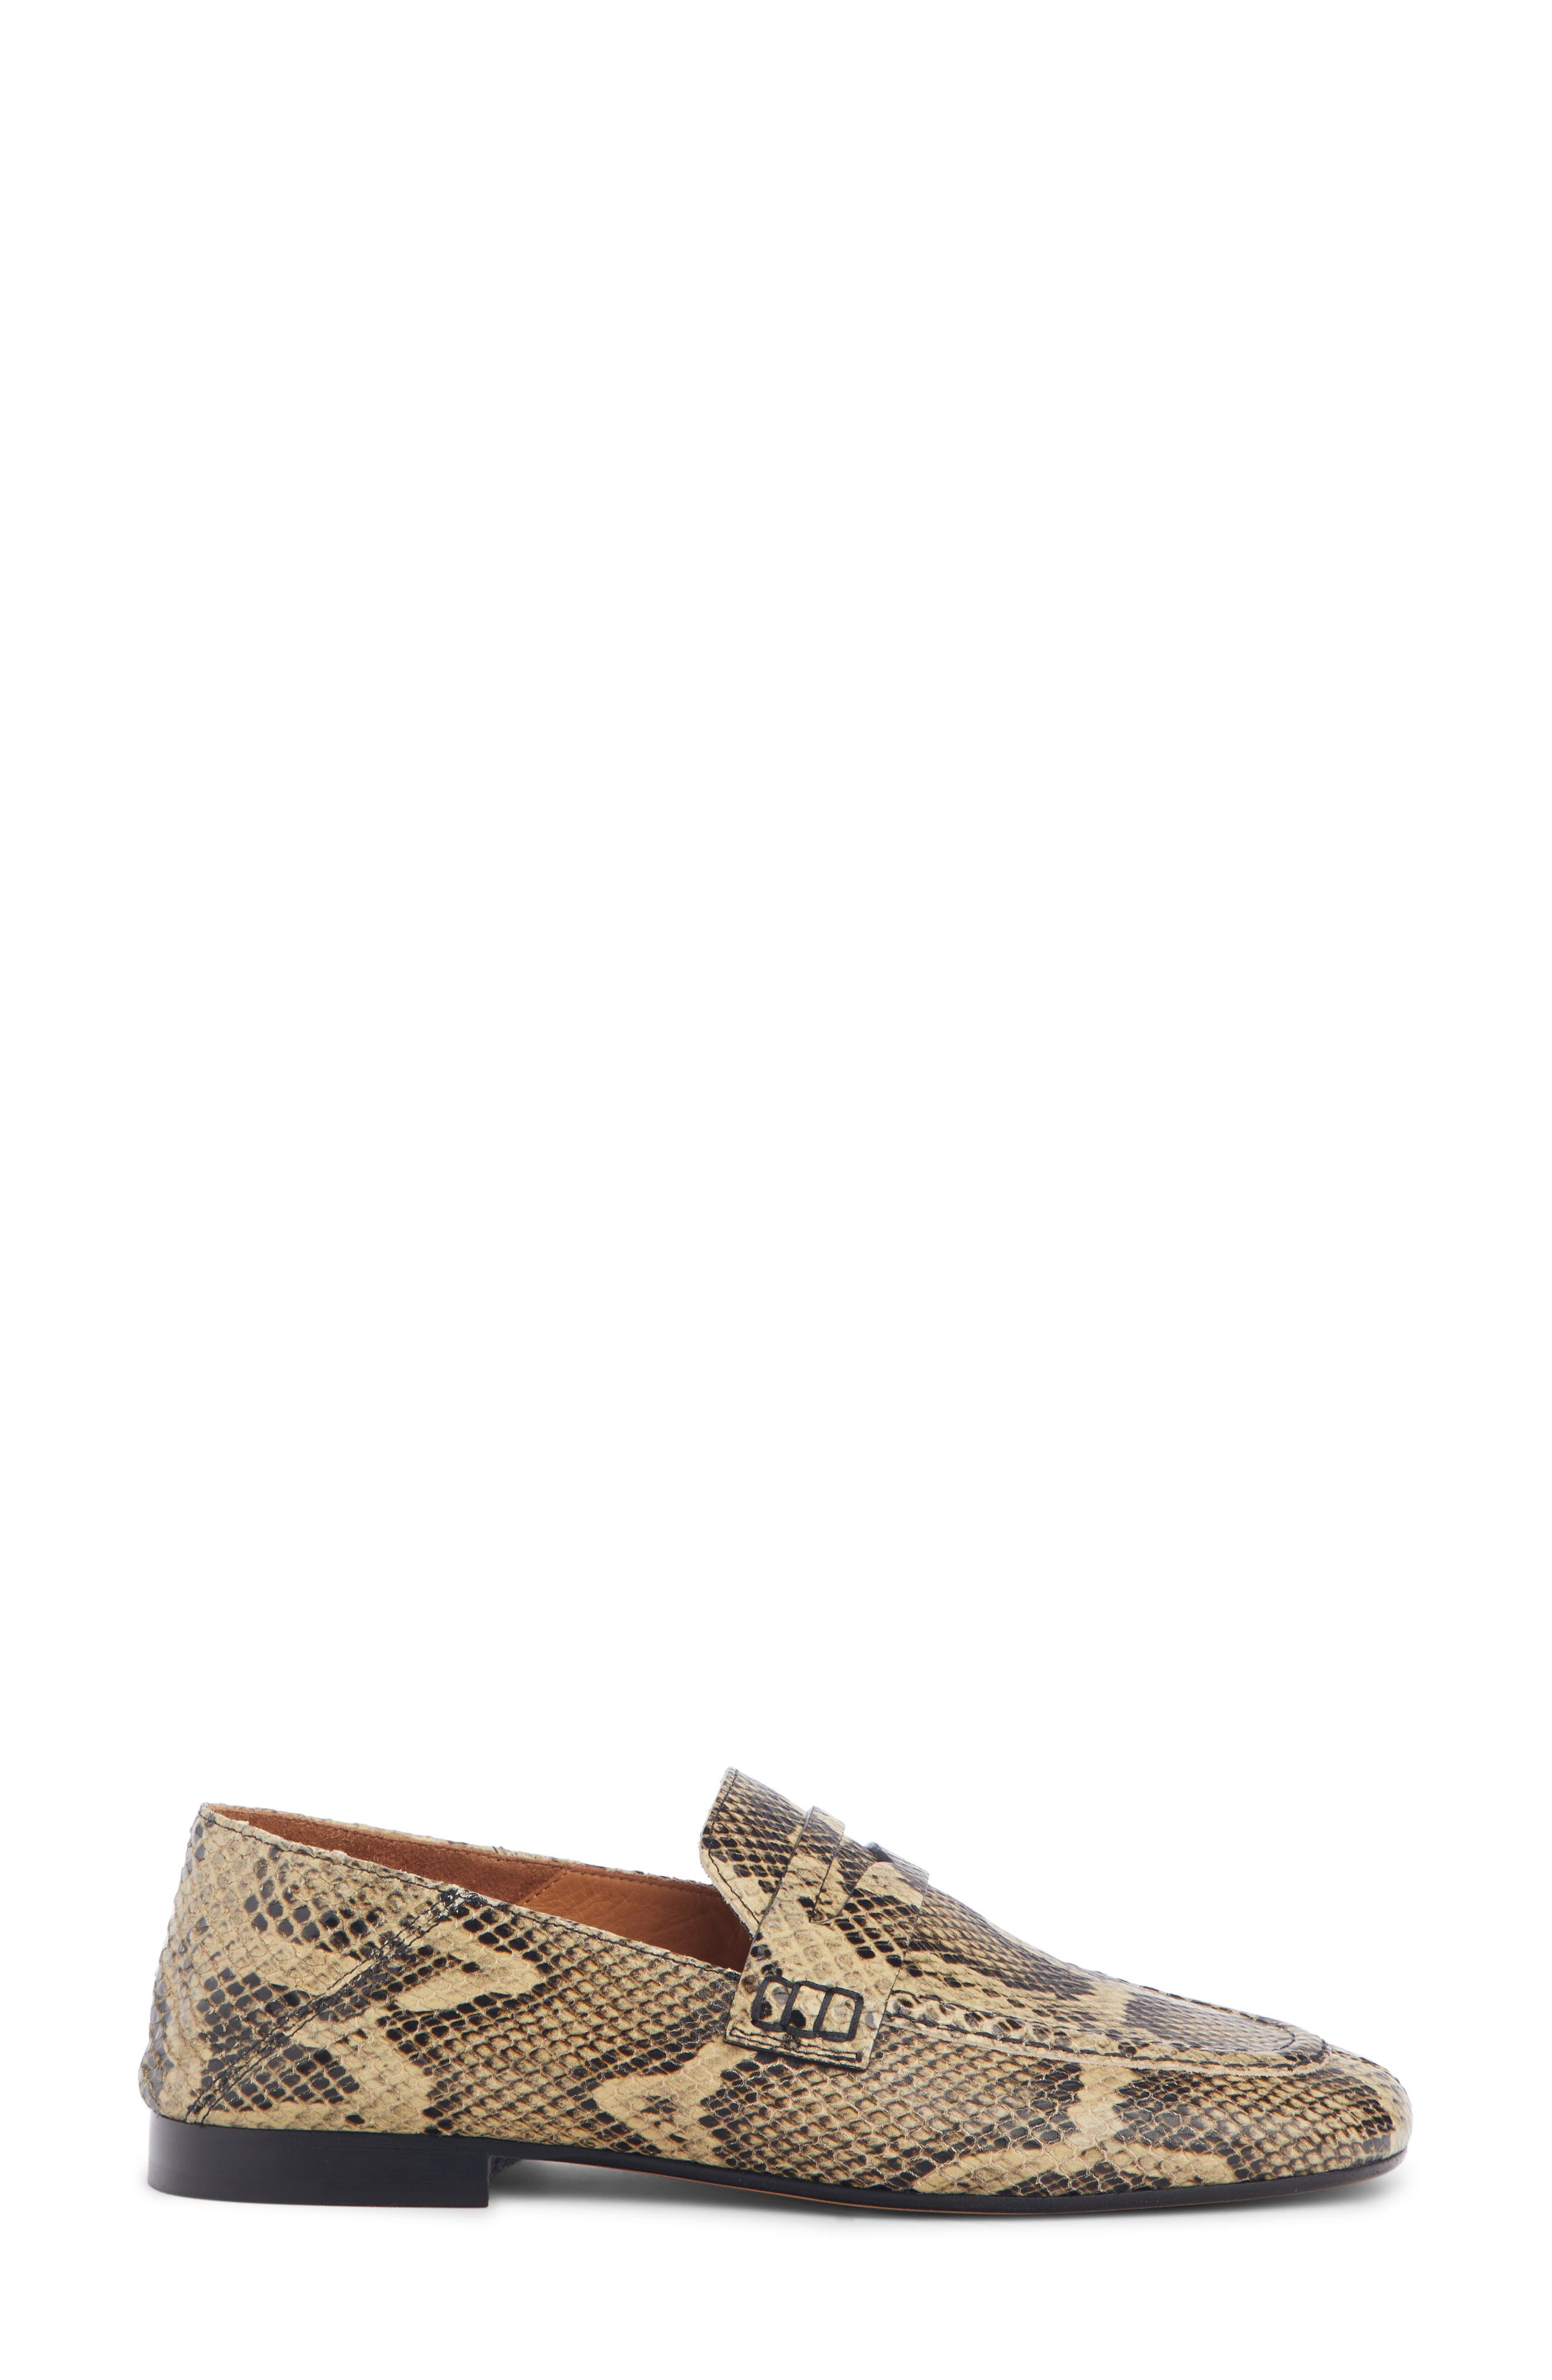 Fezzy Snakeskin Embossed Convertible Loafer,                             Alternate thumbnail 2, color,                             NATURAL EXOTIC